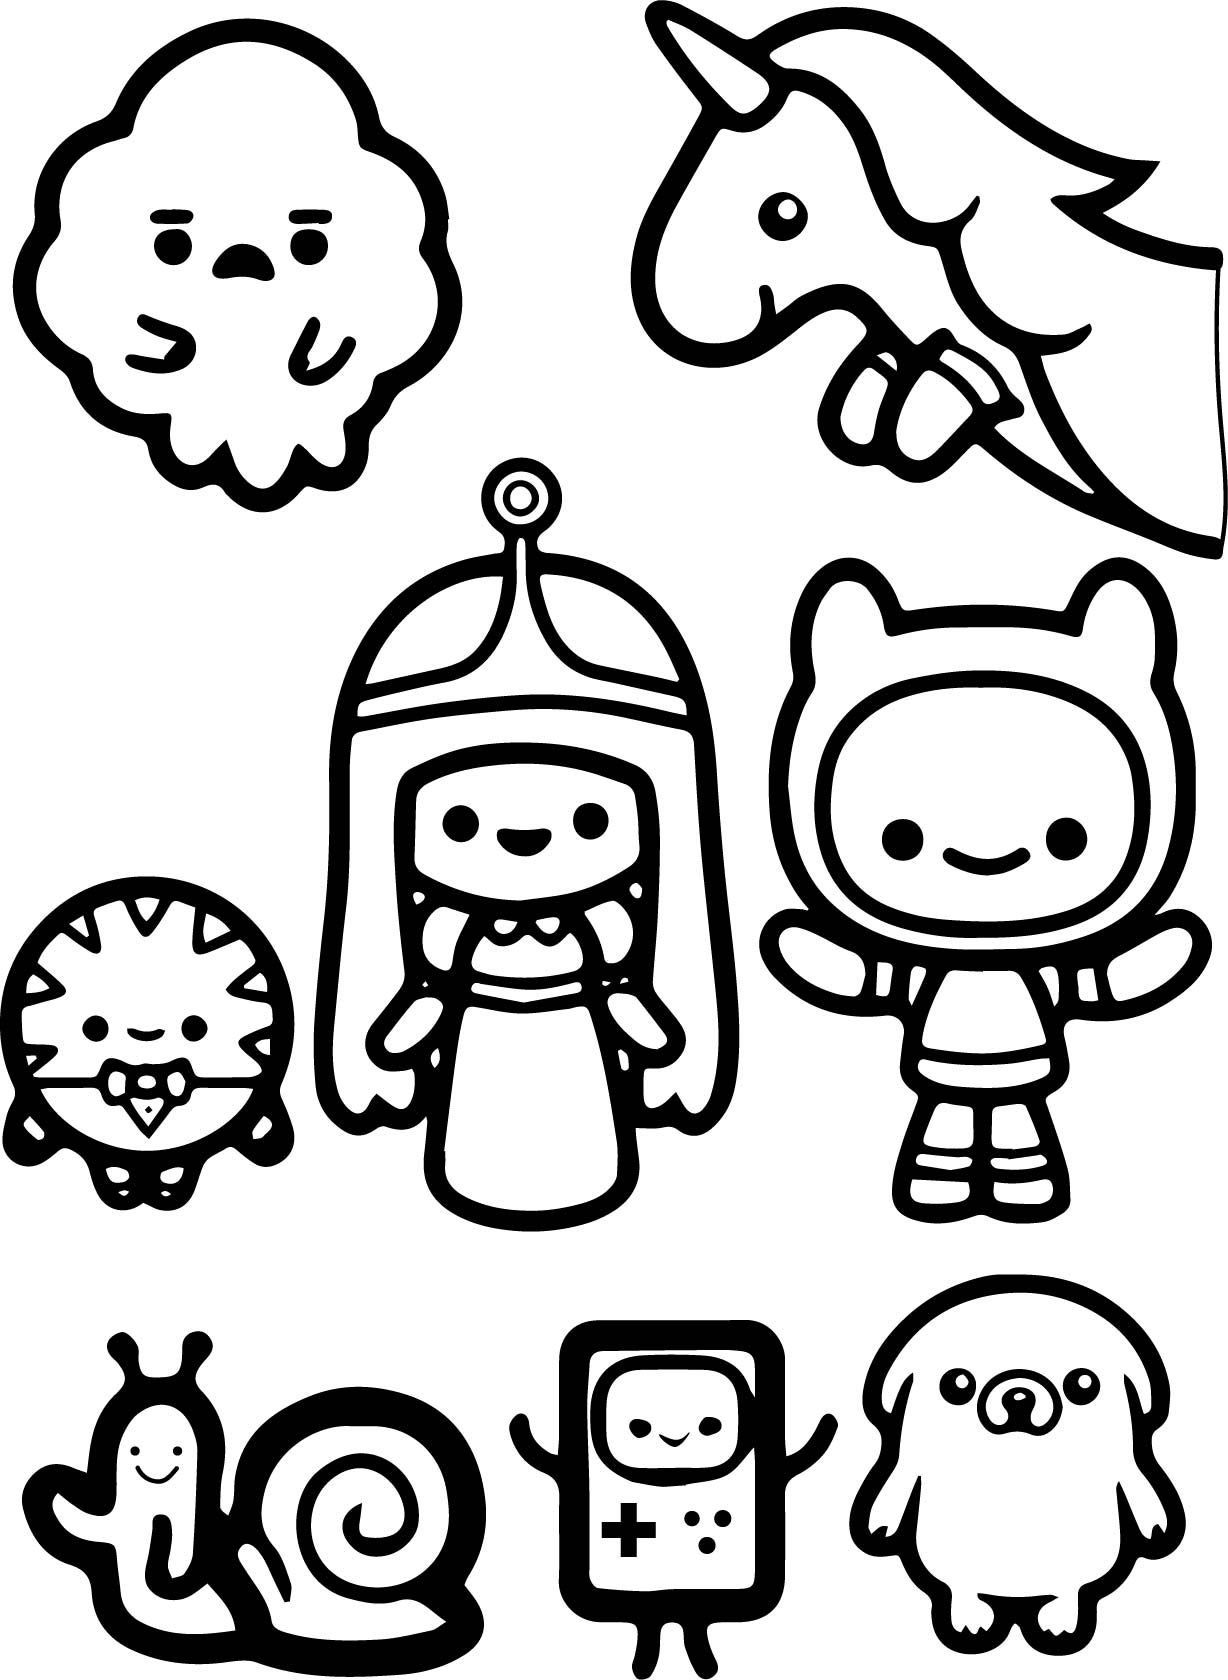 Cool Adventure Time Finn And Jack Child Coloring Page Adventure Time Coloring Pages Cartoon Coloring Pages Coloring Pages